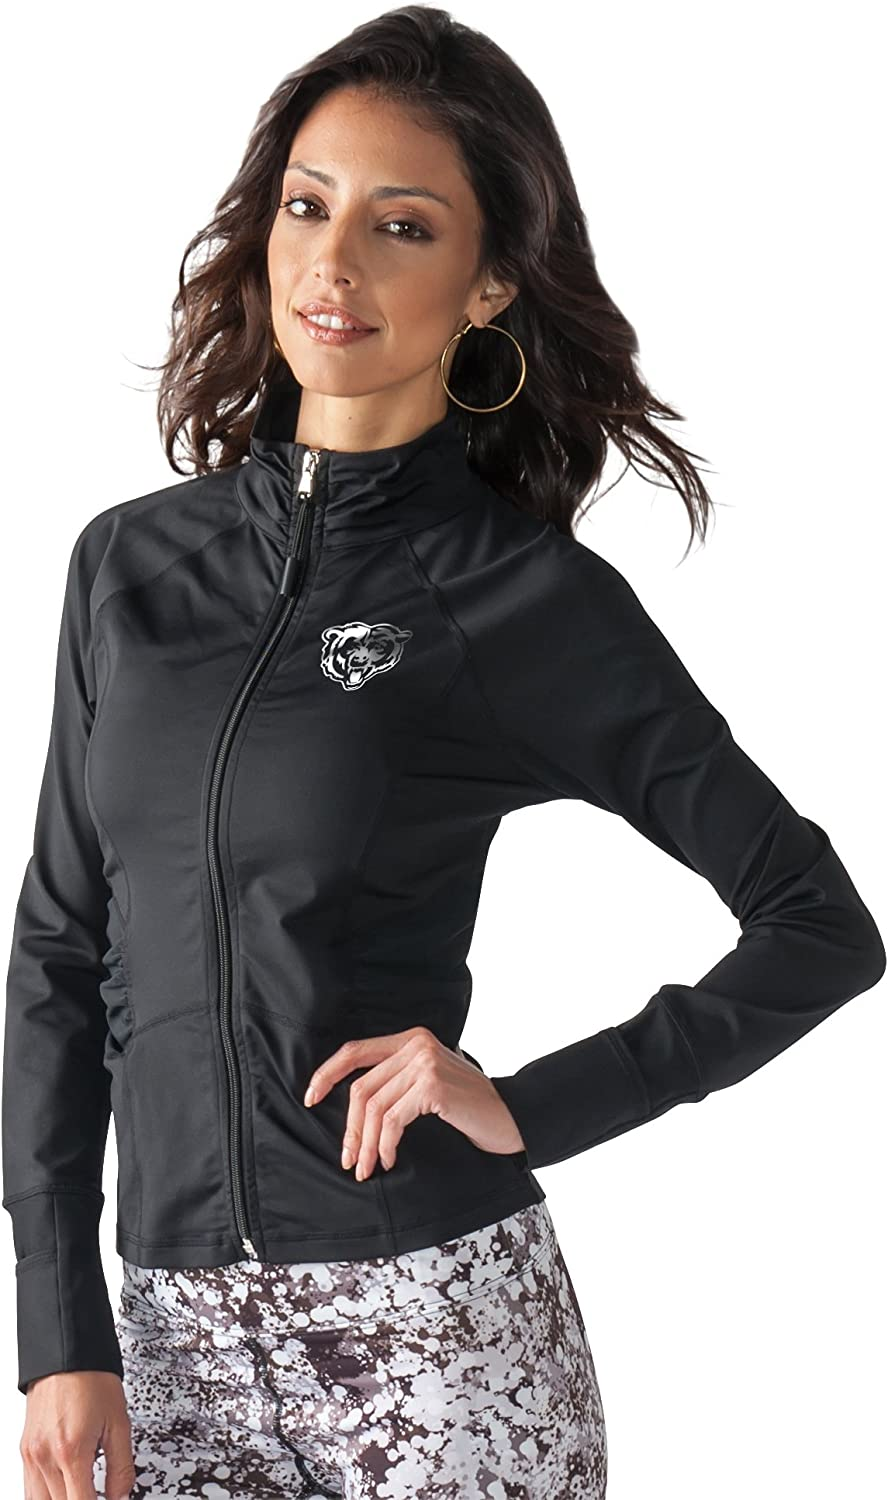 Touch by Alyssa Milano NFL Track Max 78% OFF Max 81% OFF Athleisure Women's Jac Sideline